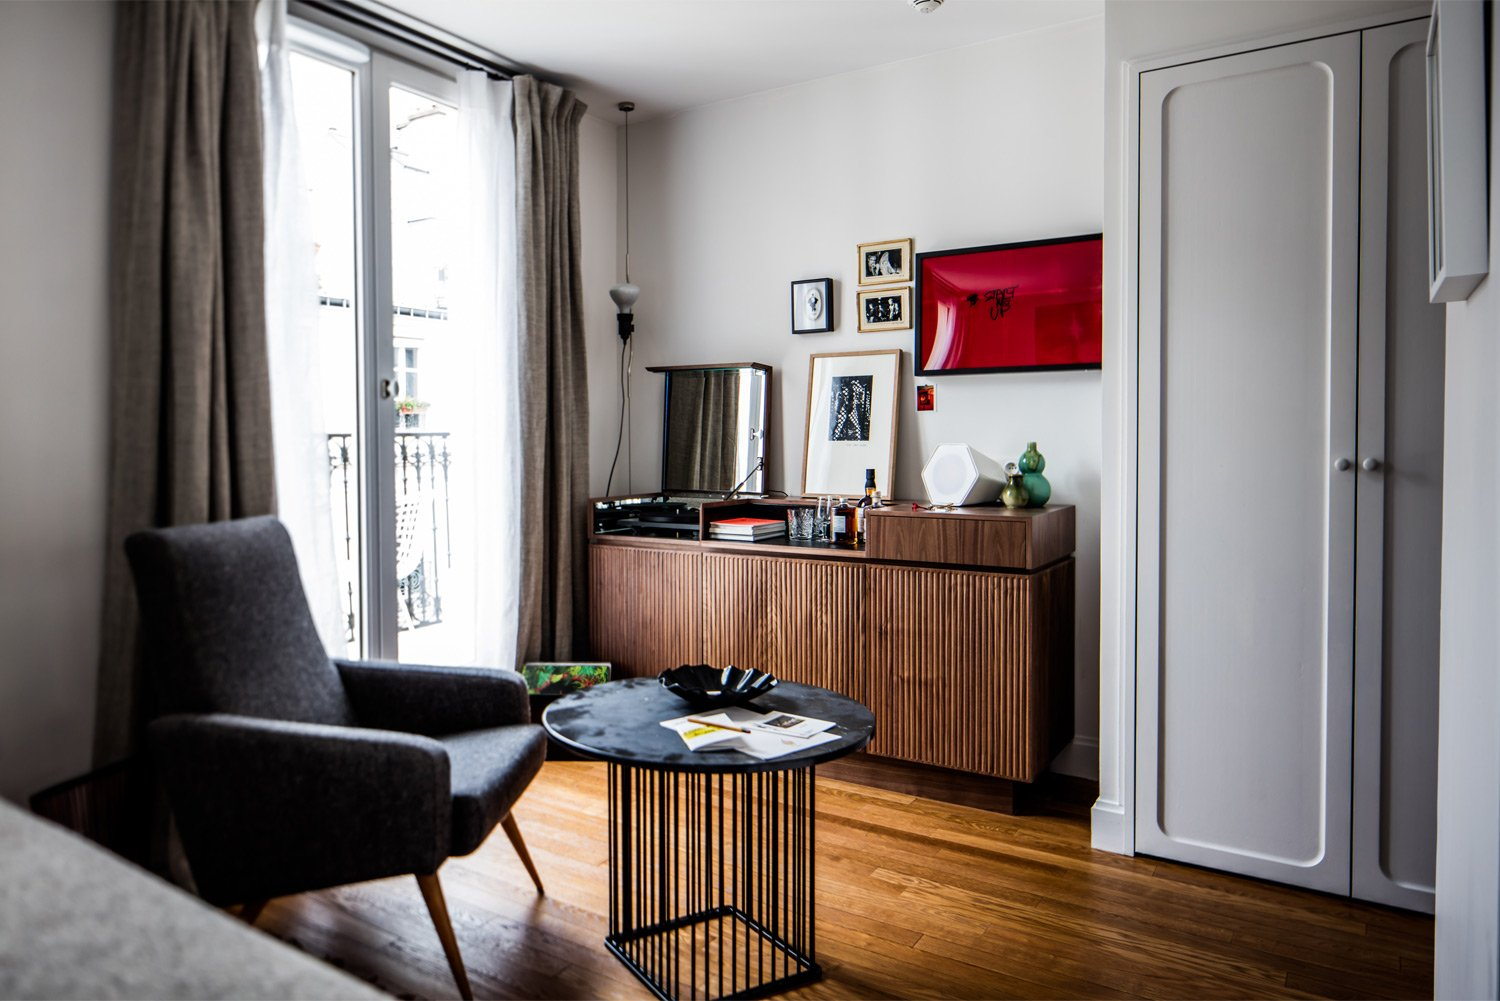 HotelLePigalle11